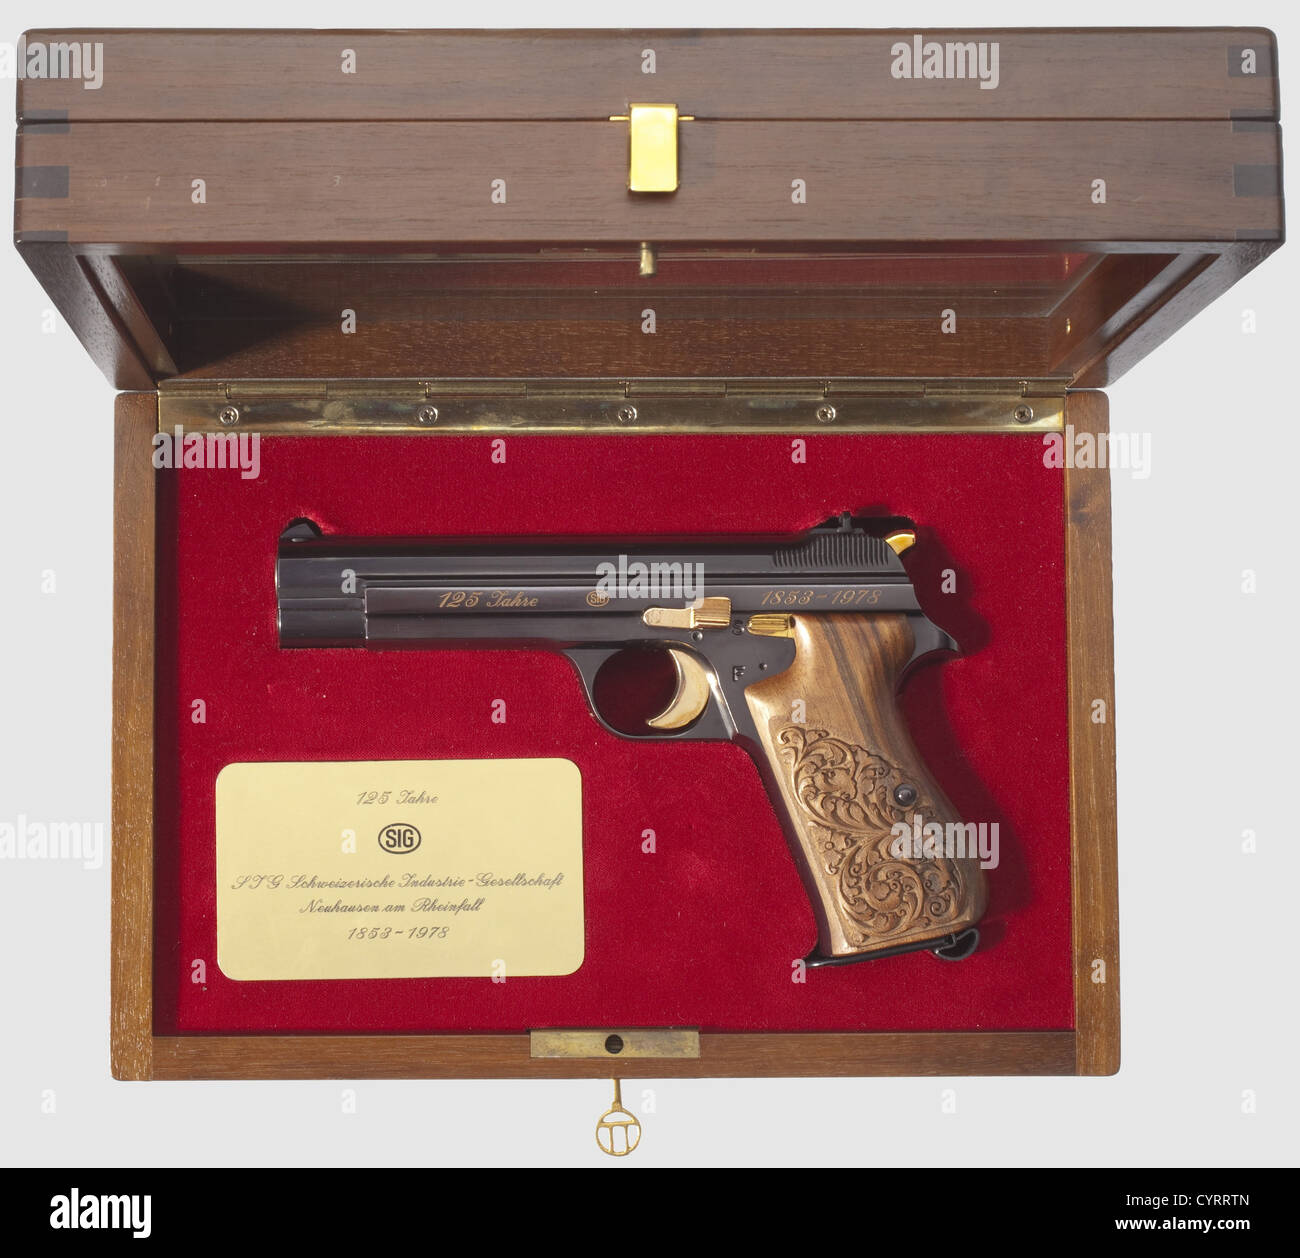 Commemorative pistol JP 210, 1978, in its case, cal. 9 mm Parabellum, no. JP 054. Matching numbers. Bright bore. Stock Photo